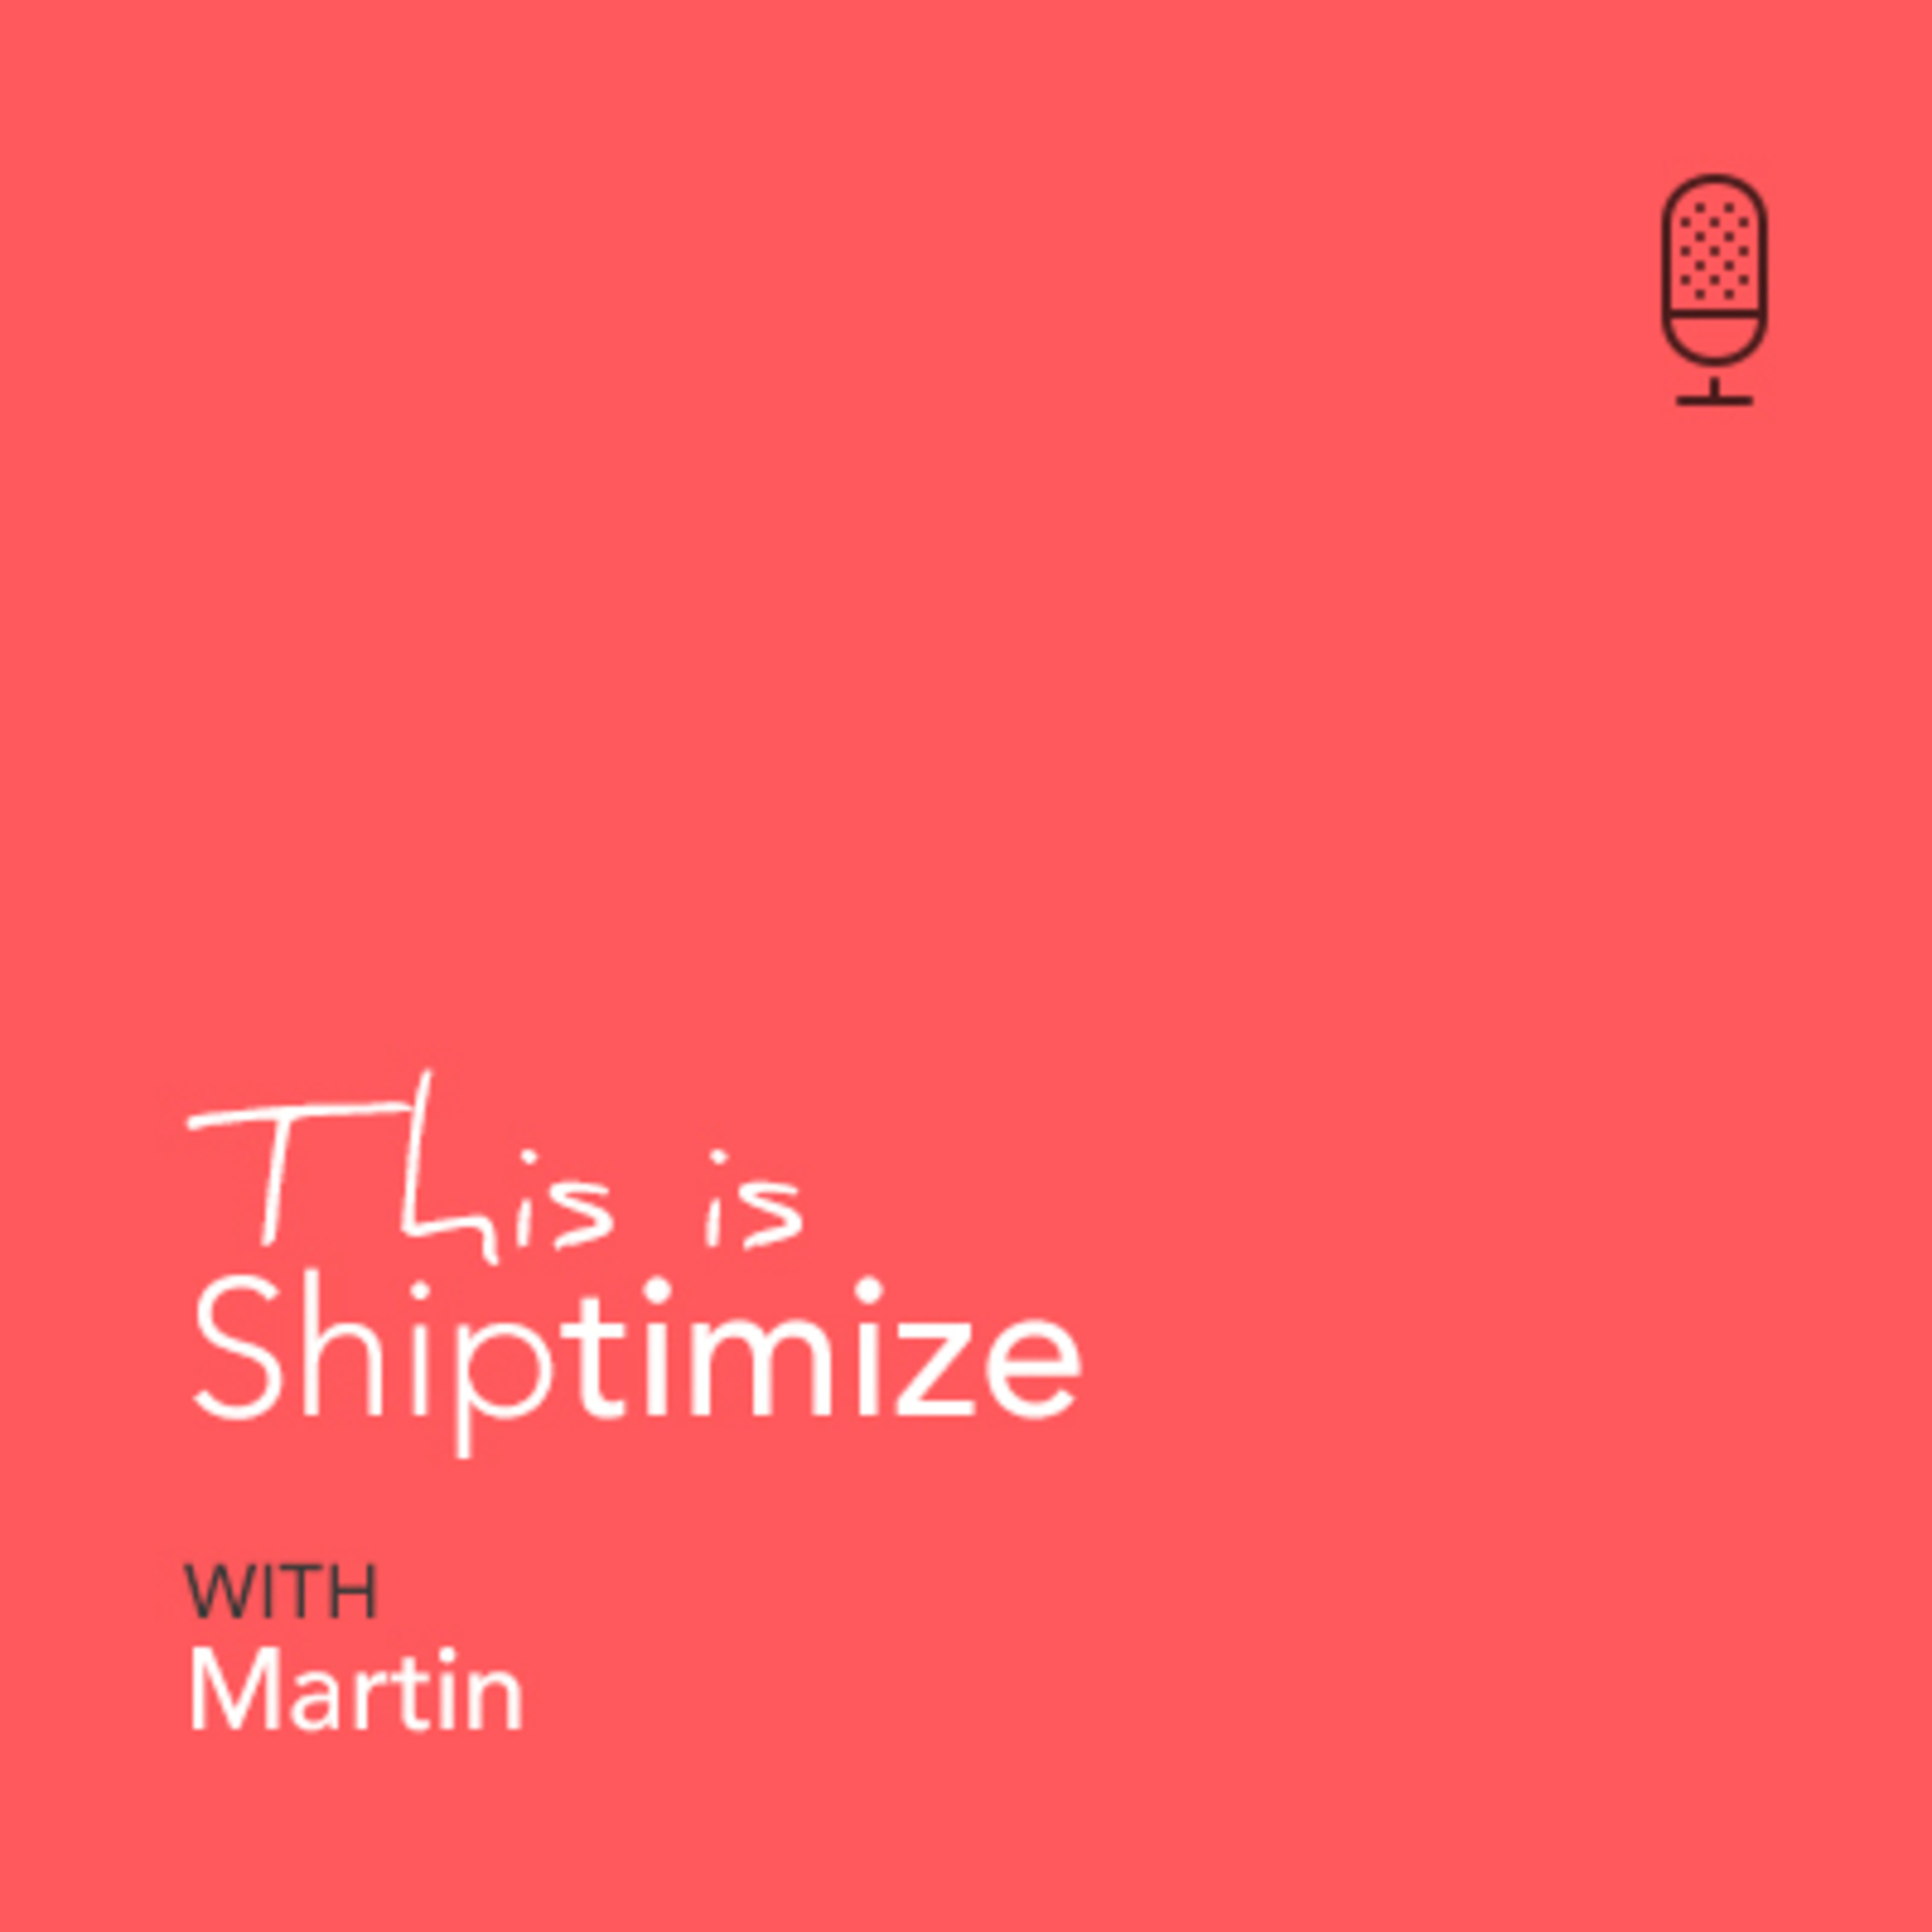 This is Shiptimize - Meet Martin!